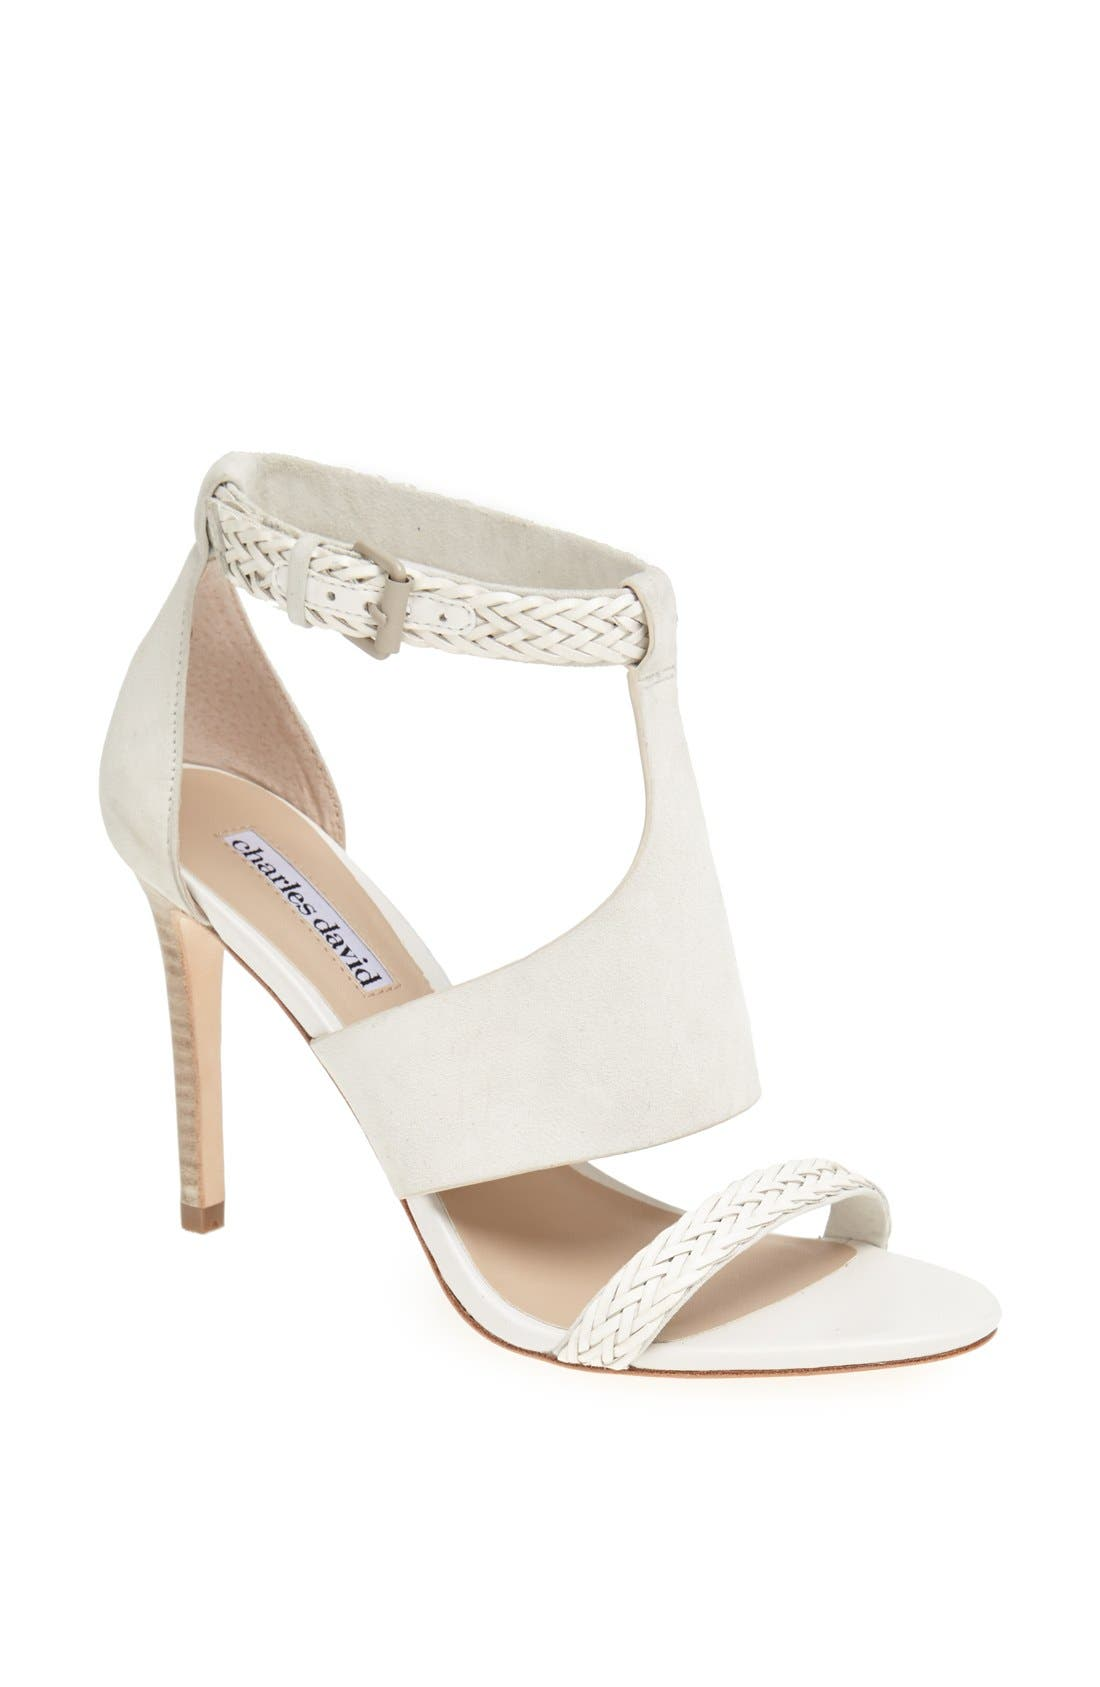 Main Image - Charles David 'Integrity' Sandal